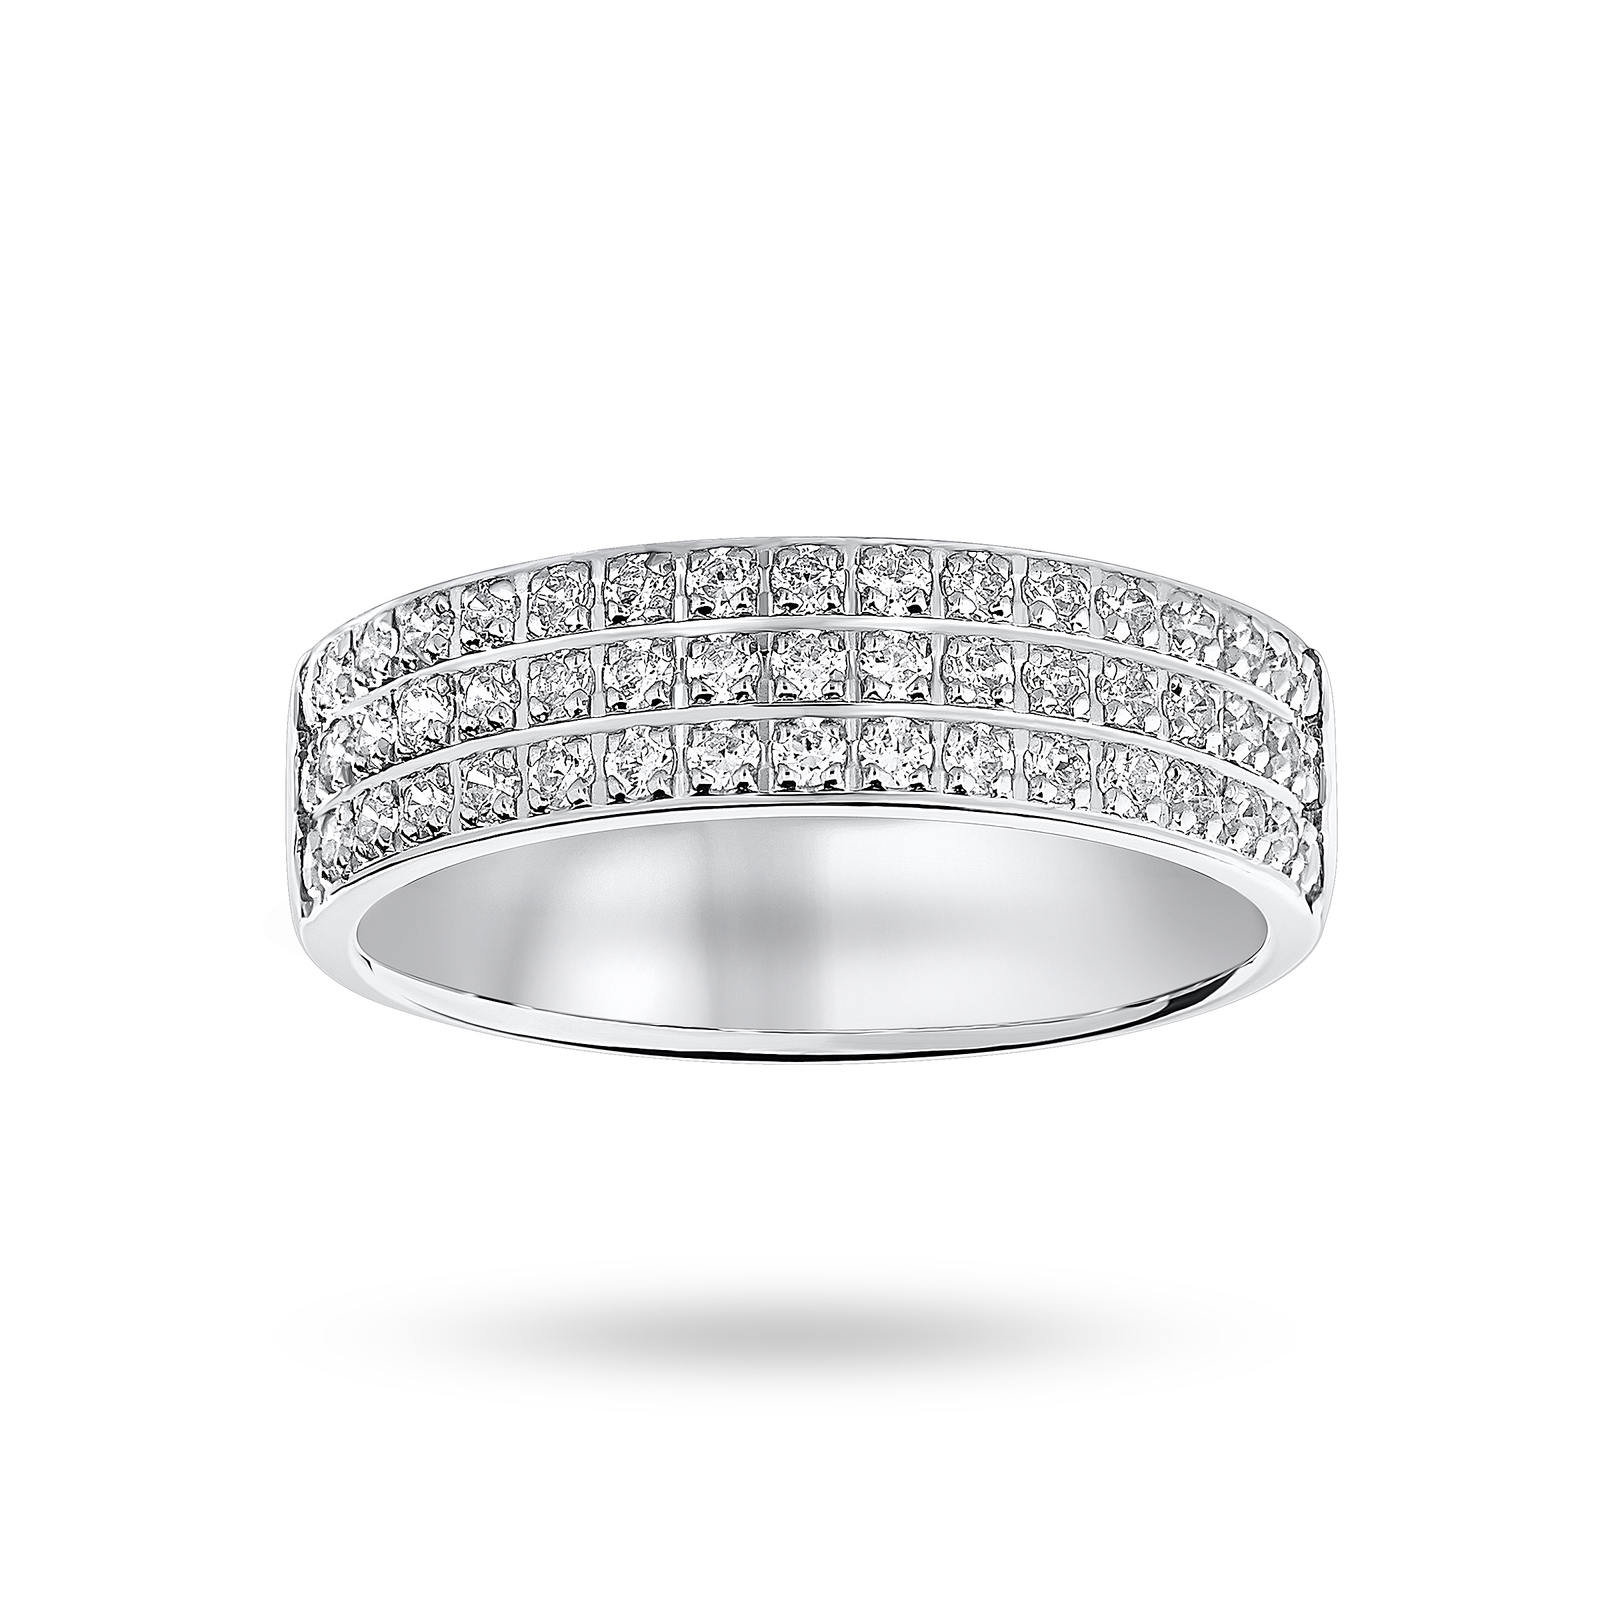 Platinum 0.50 Carat Brilliant Cut 3 Row Claw Pave Half Eternity Ring